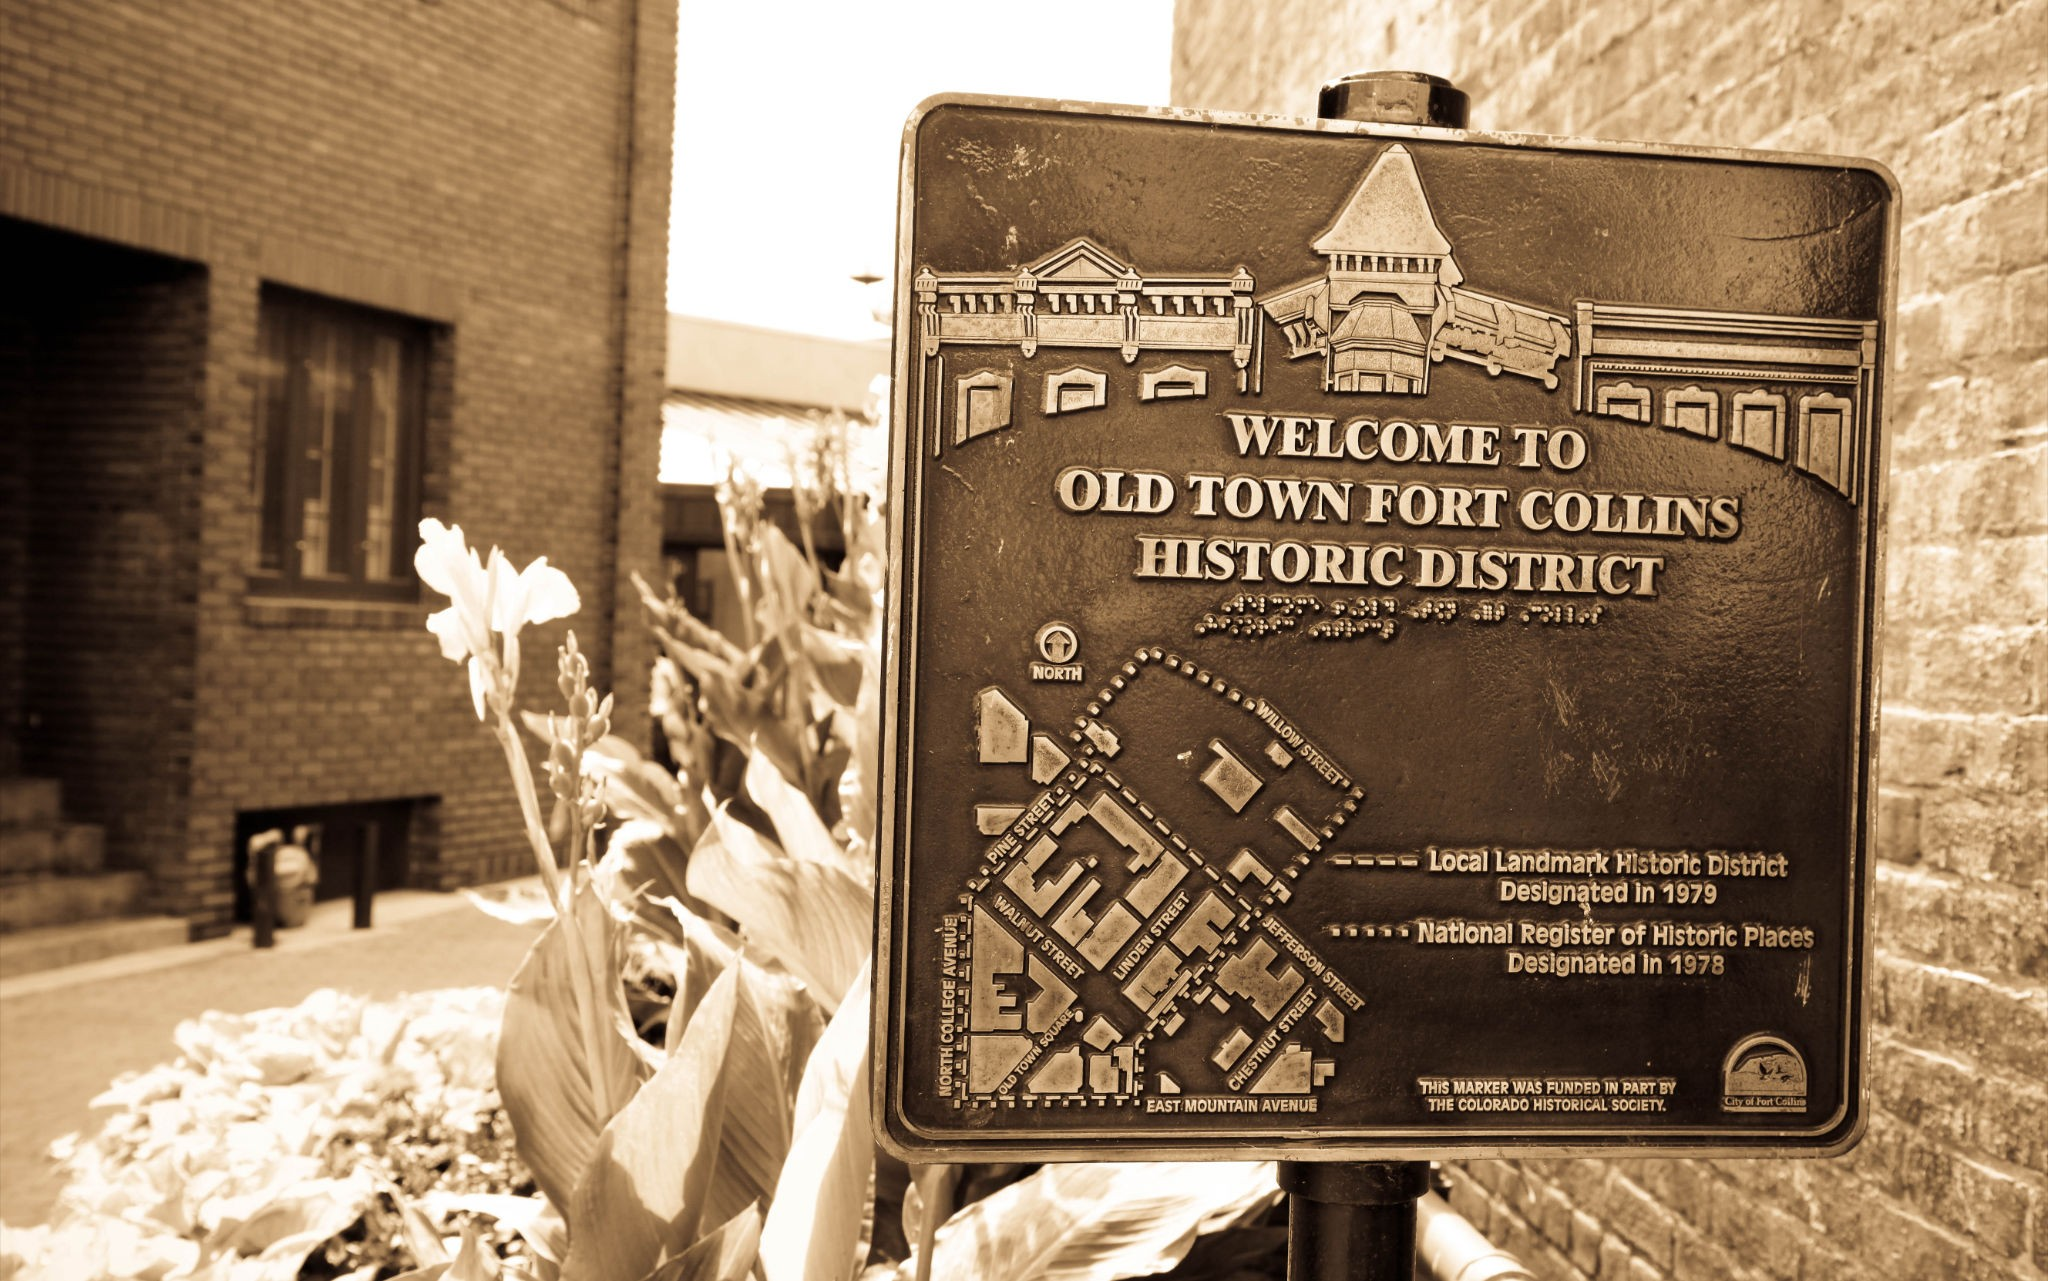 Old Town Fort Collins Historic District